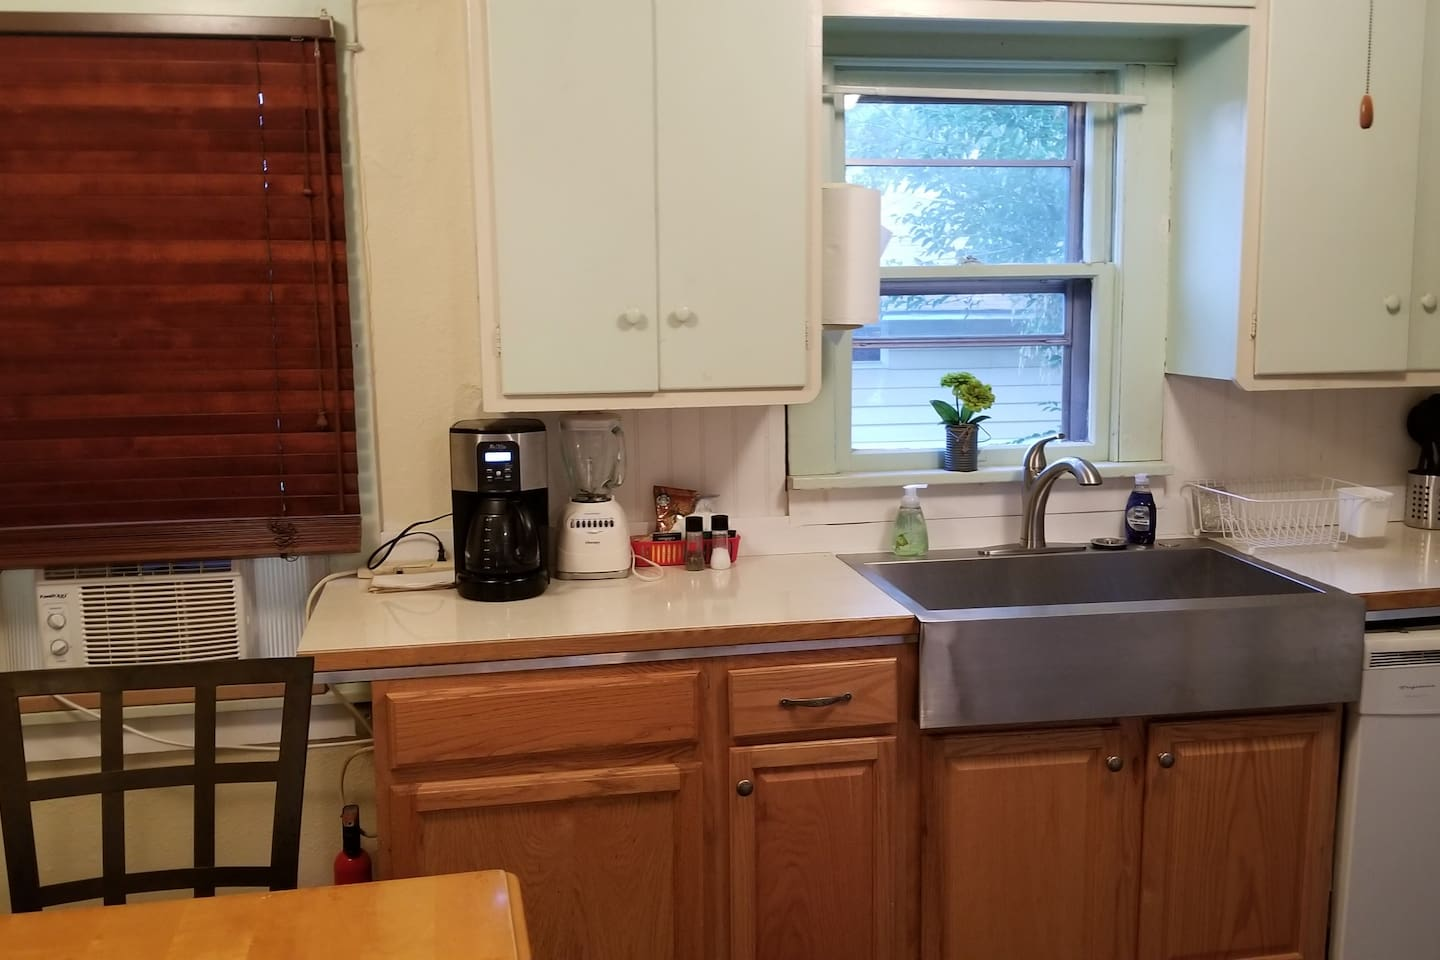 Come experience your next adventure in our home! Just a short drive Downtown to our Brewery, several cafes, bars, shops, & other restaurants are all within walking distance! Close to OIT & Hospital. Klamath Lake + Fitness Center & Golf Course too!